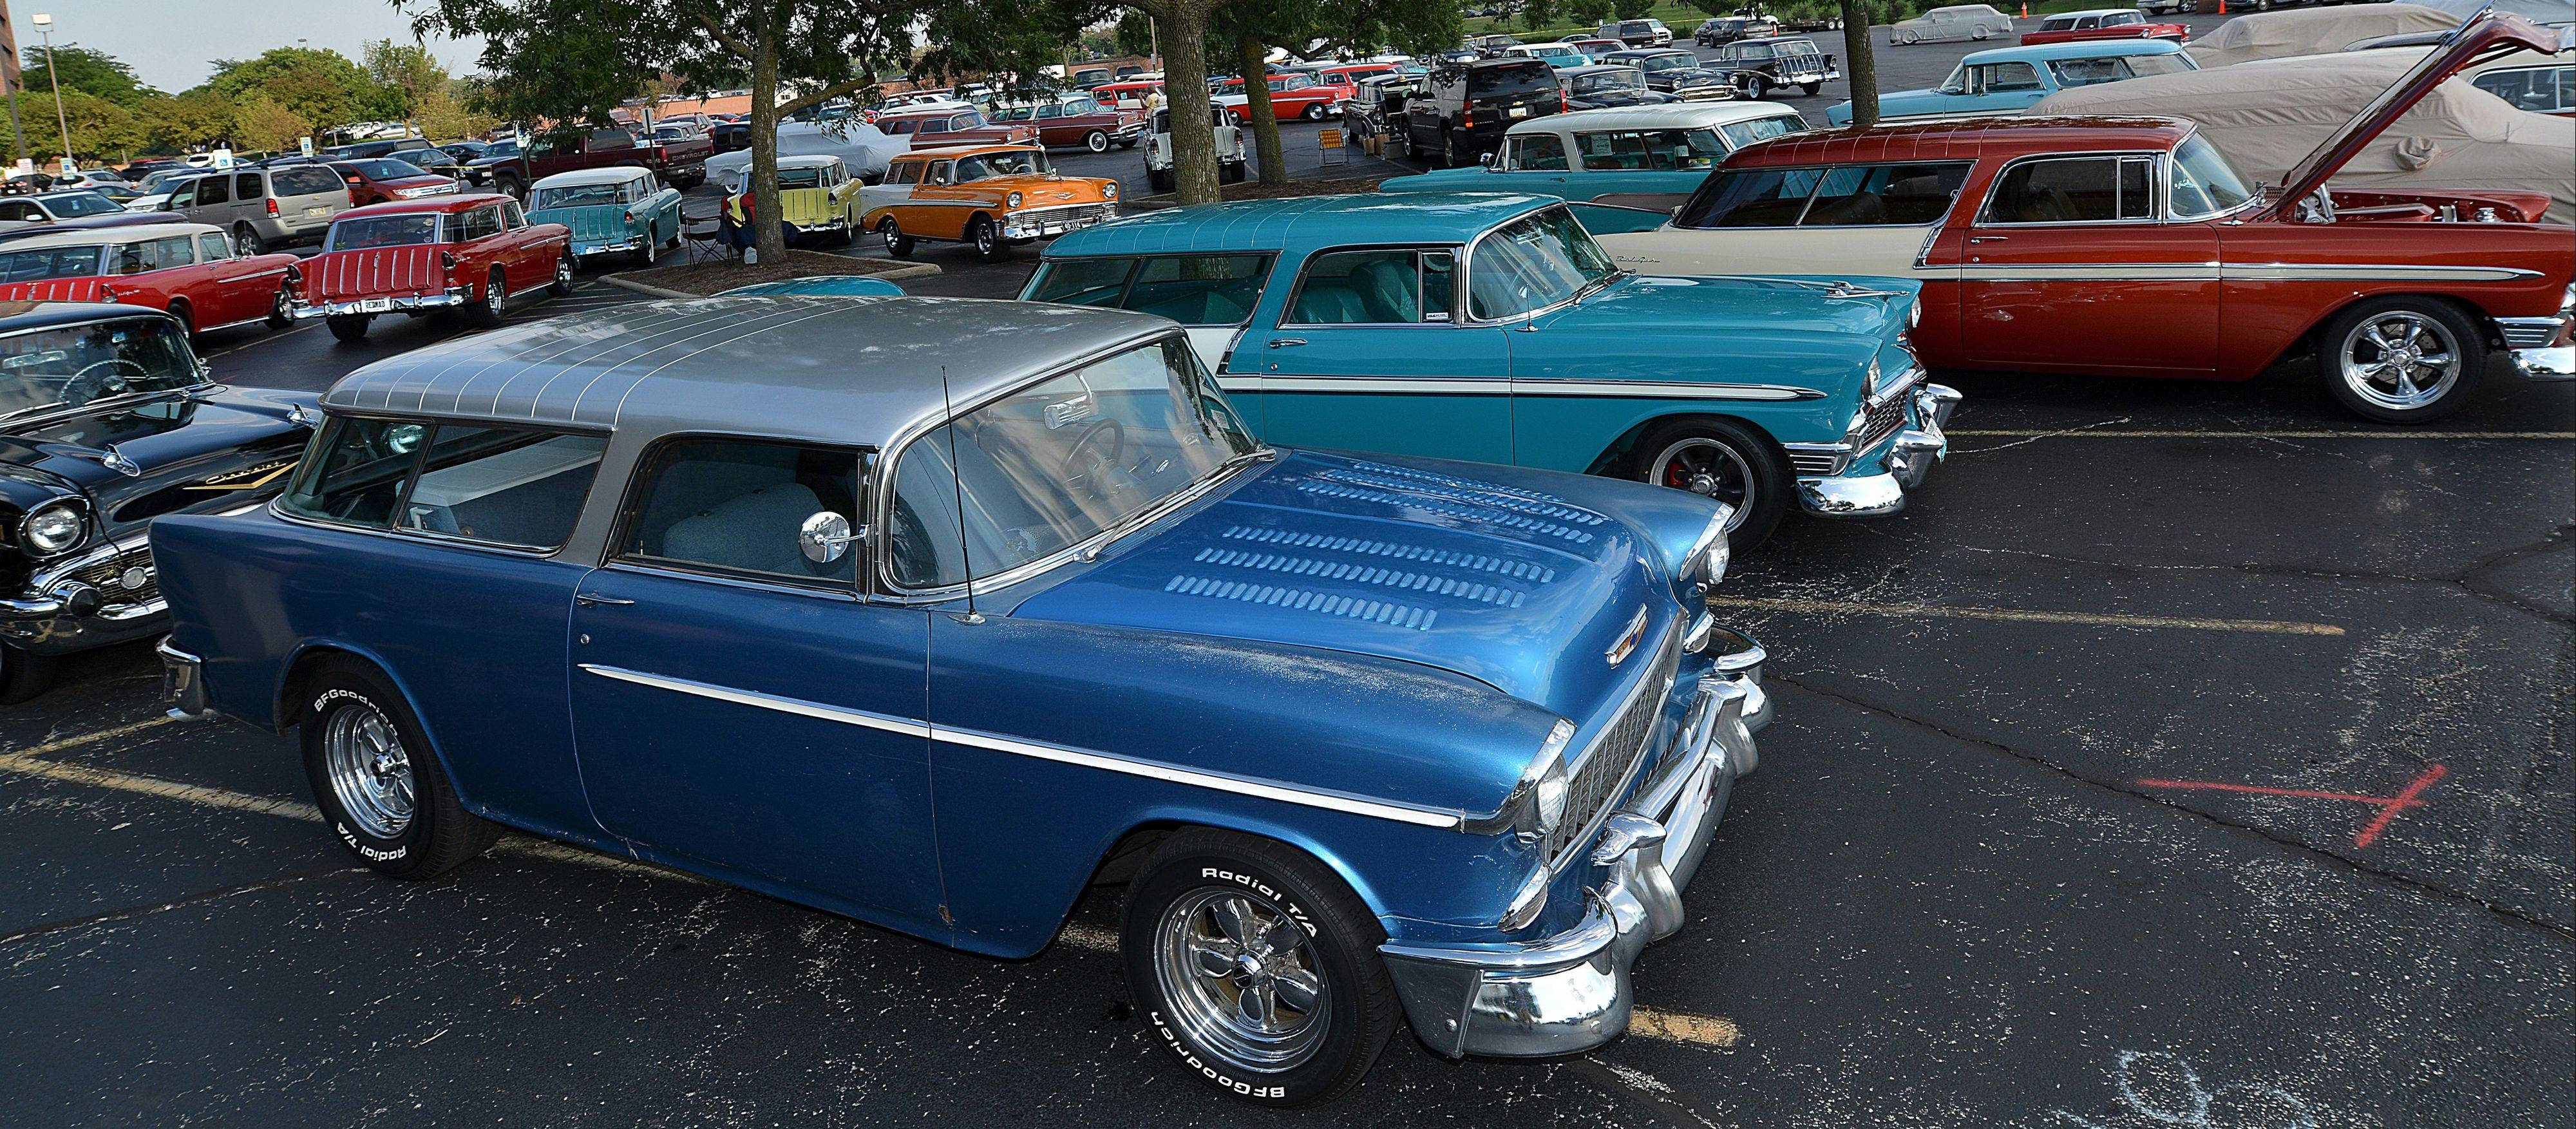 More than 100 enthusiasts parked their rides at the Chevrolet Nomad Association�s 25th annual convention in Itasca last week.